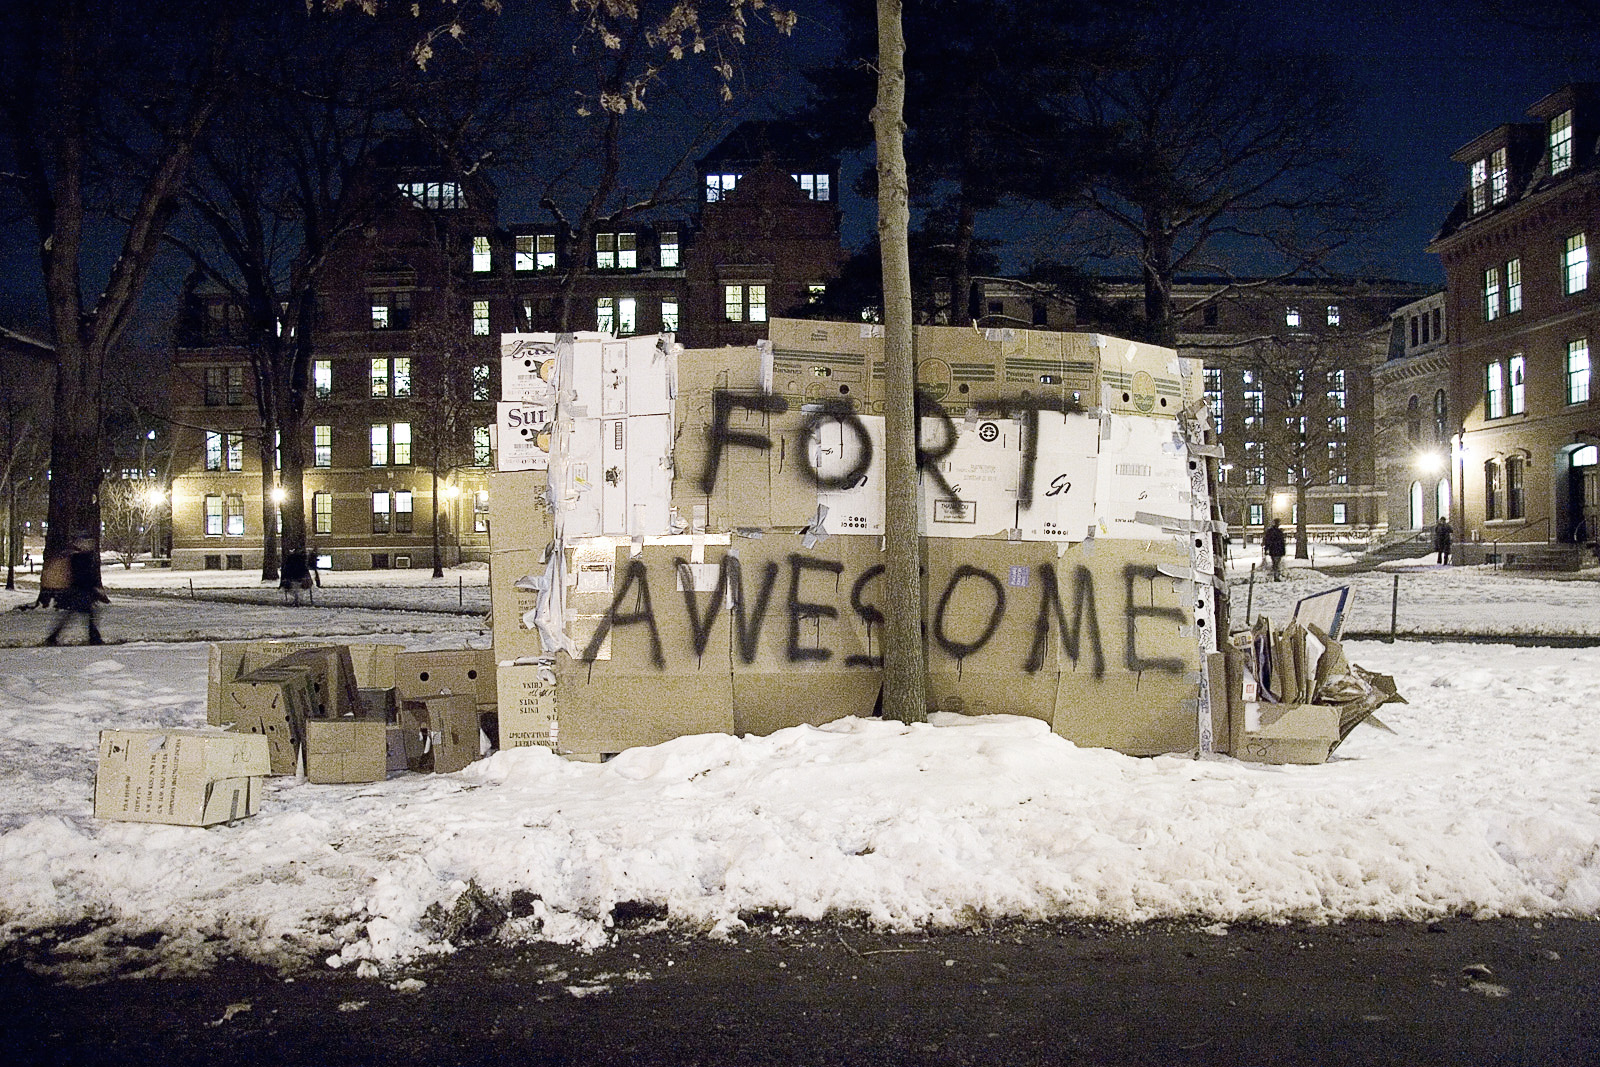 fort-awesome.jpg